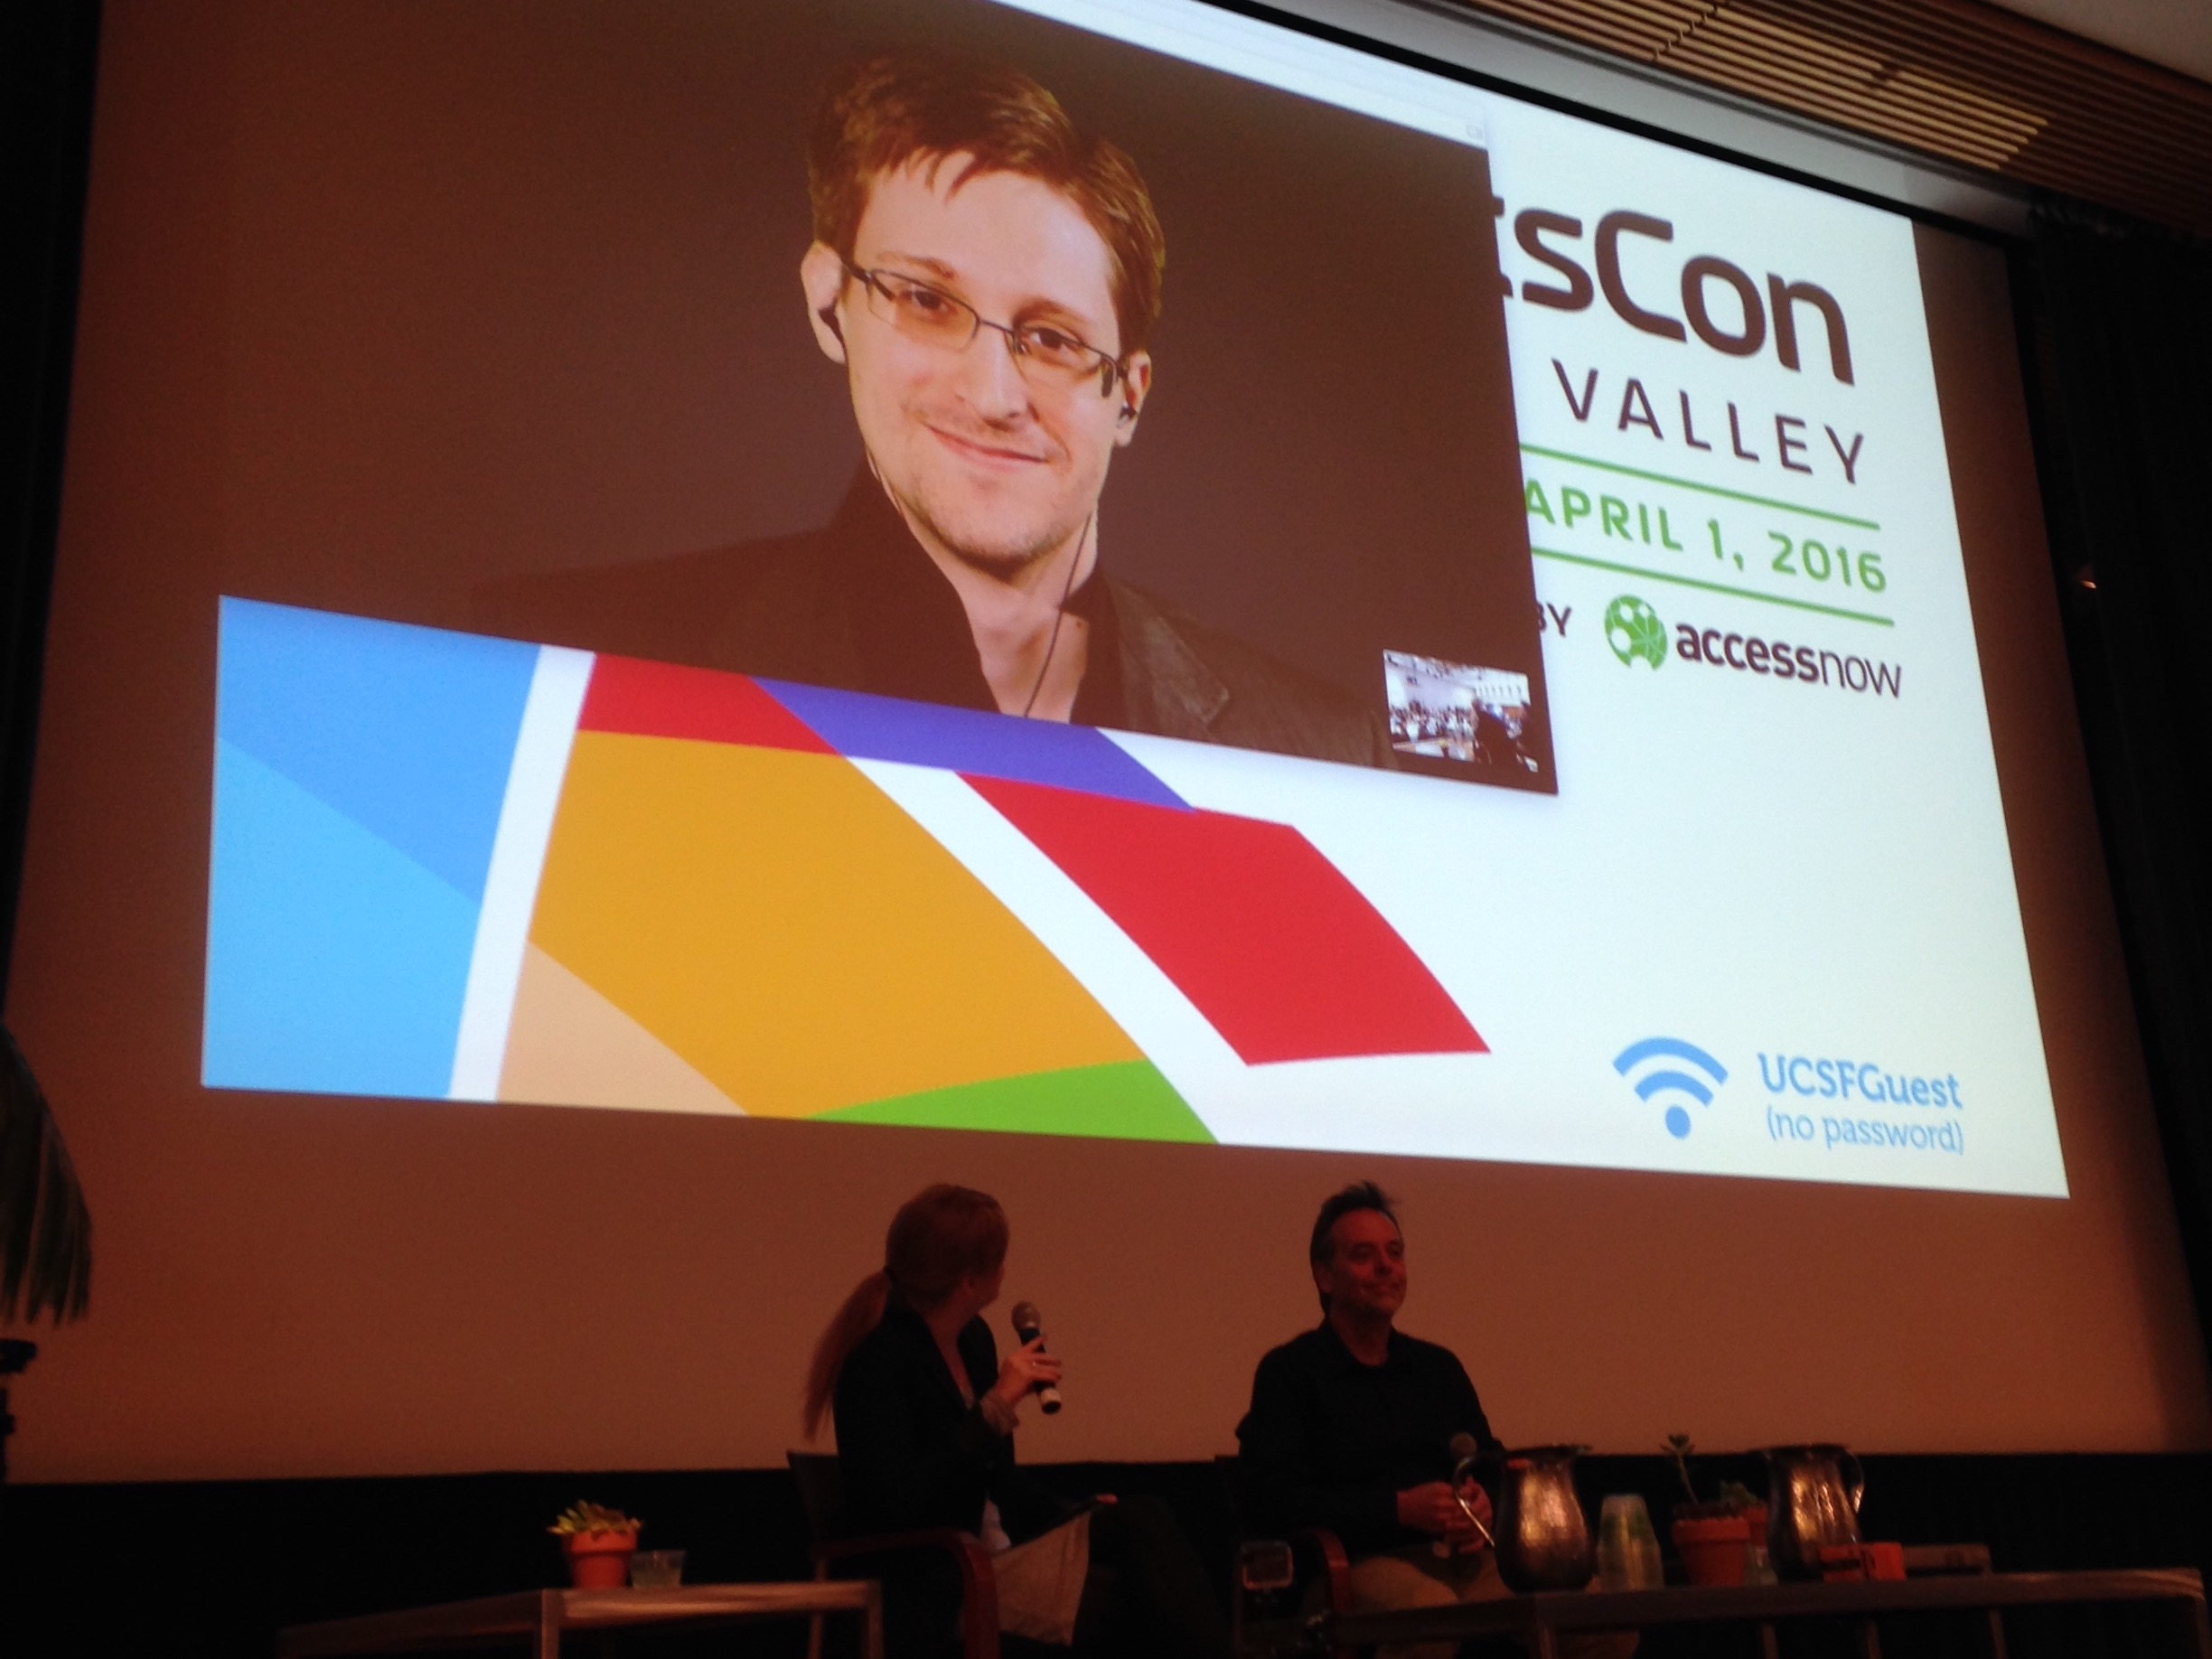 Edward Snowden was speaking remotely from Russian for RightsCon Silicon Valley 2016